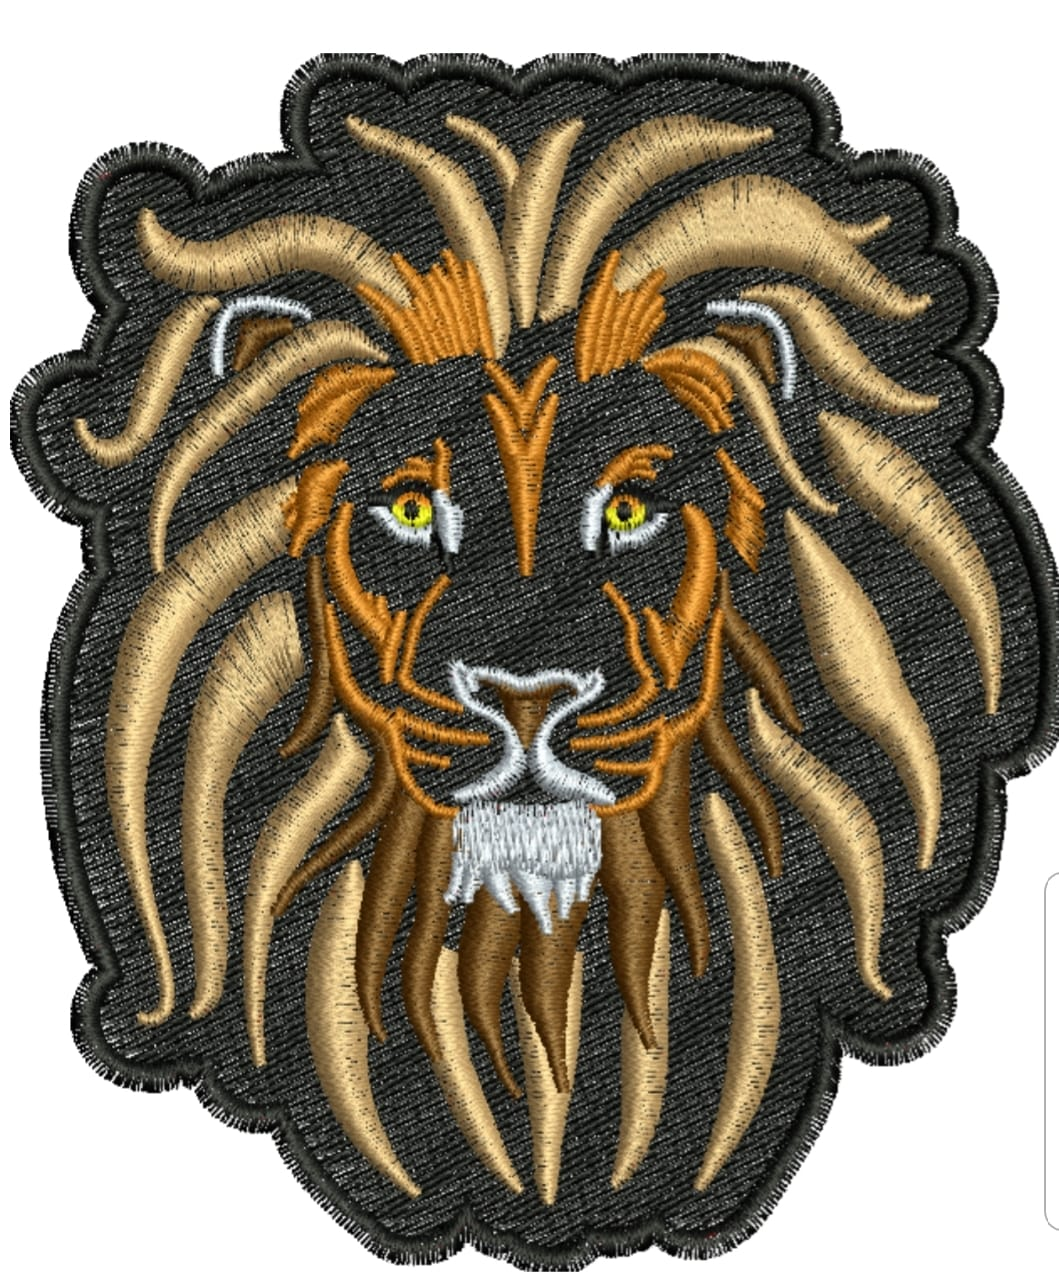 Lion of the Tribe of Judah?